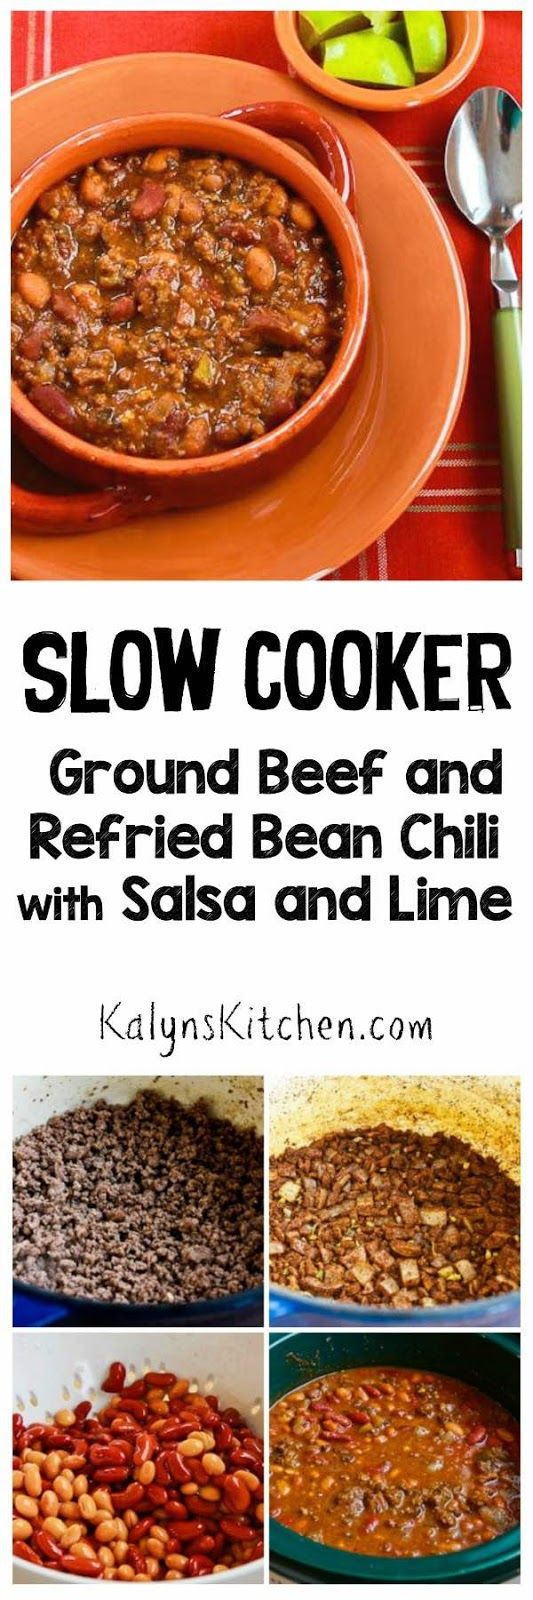 Slow Cooker Ground Beef and Refried Bean Chili with Salsa and Lime ...